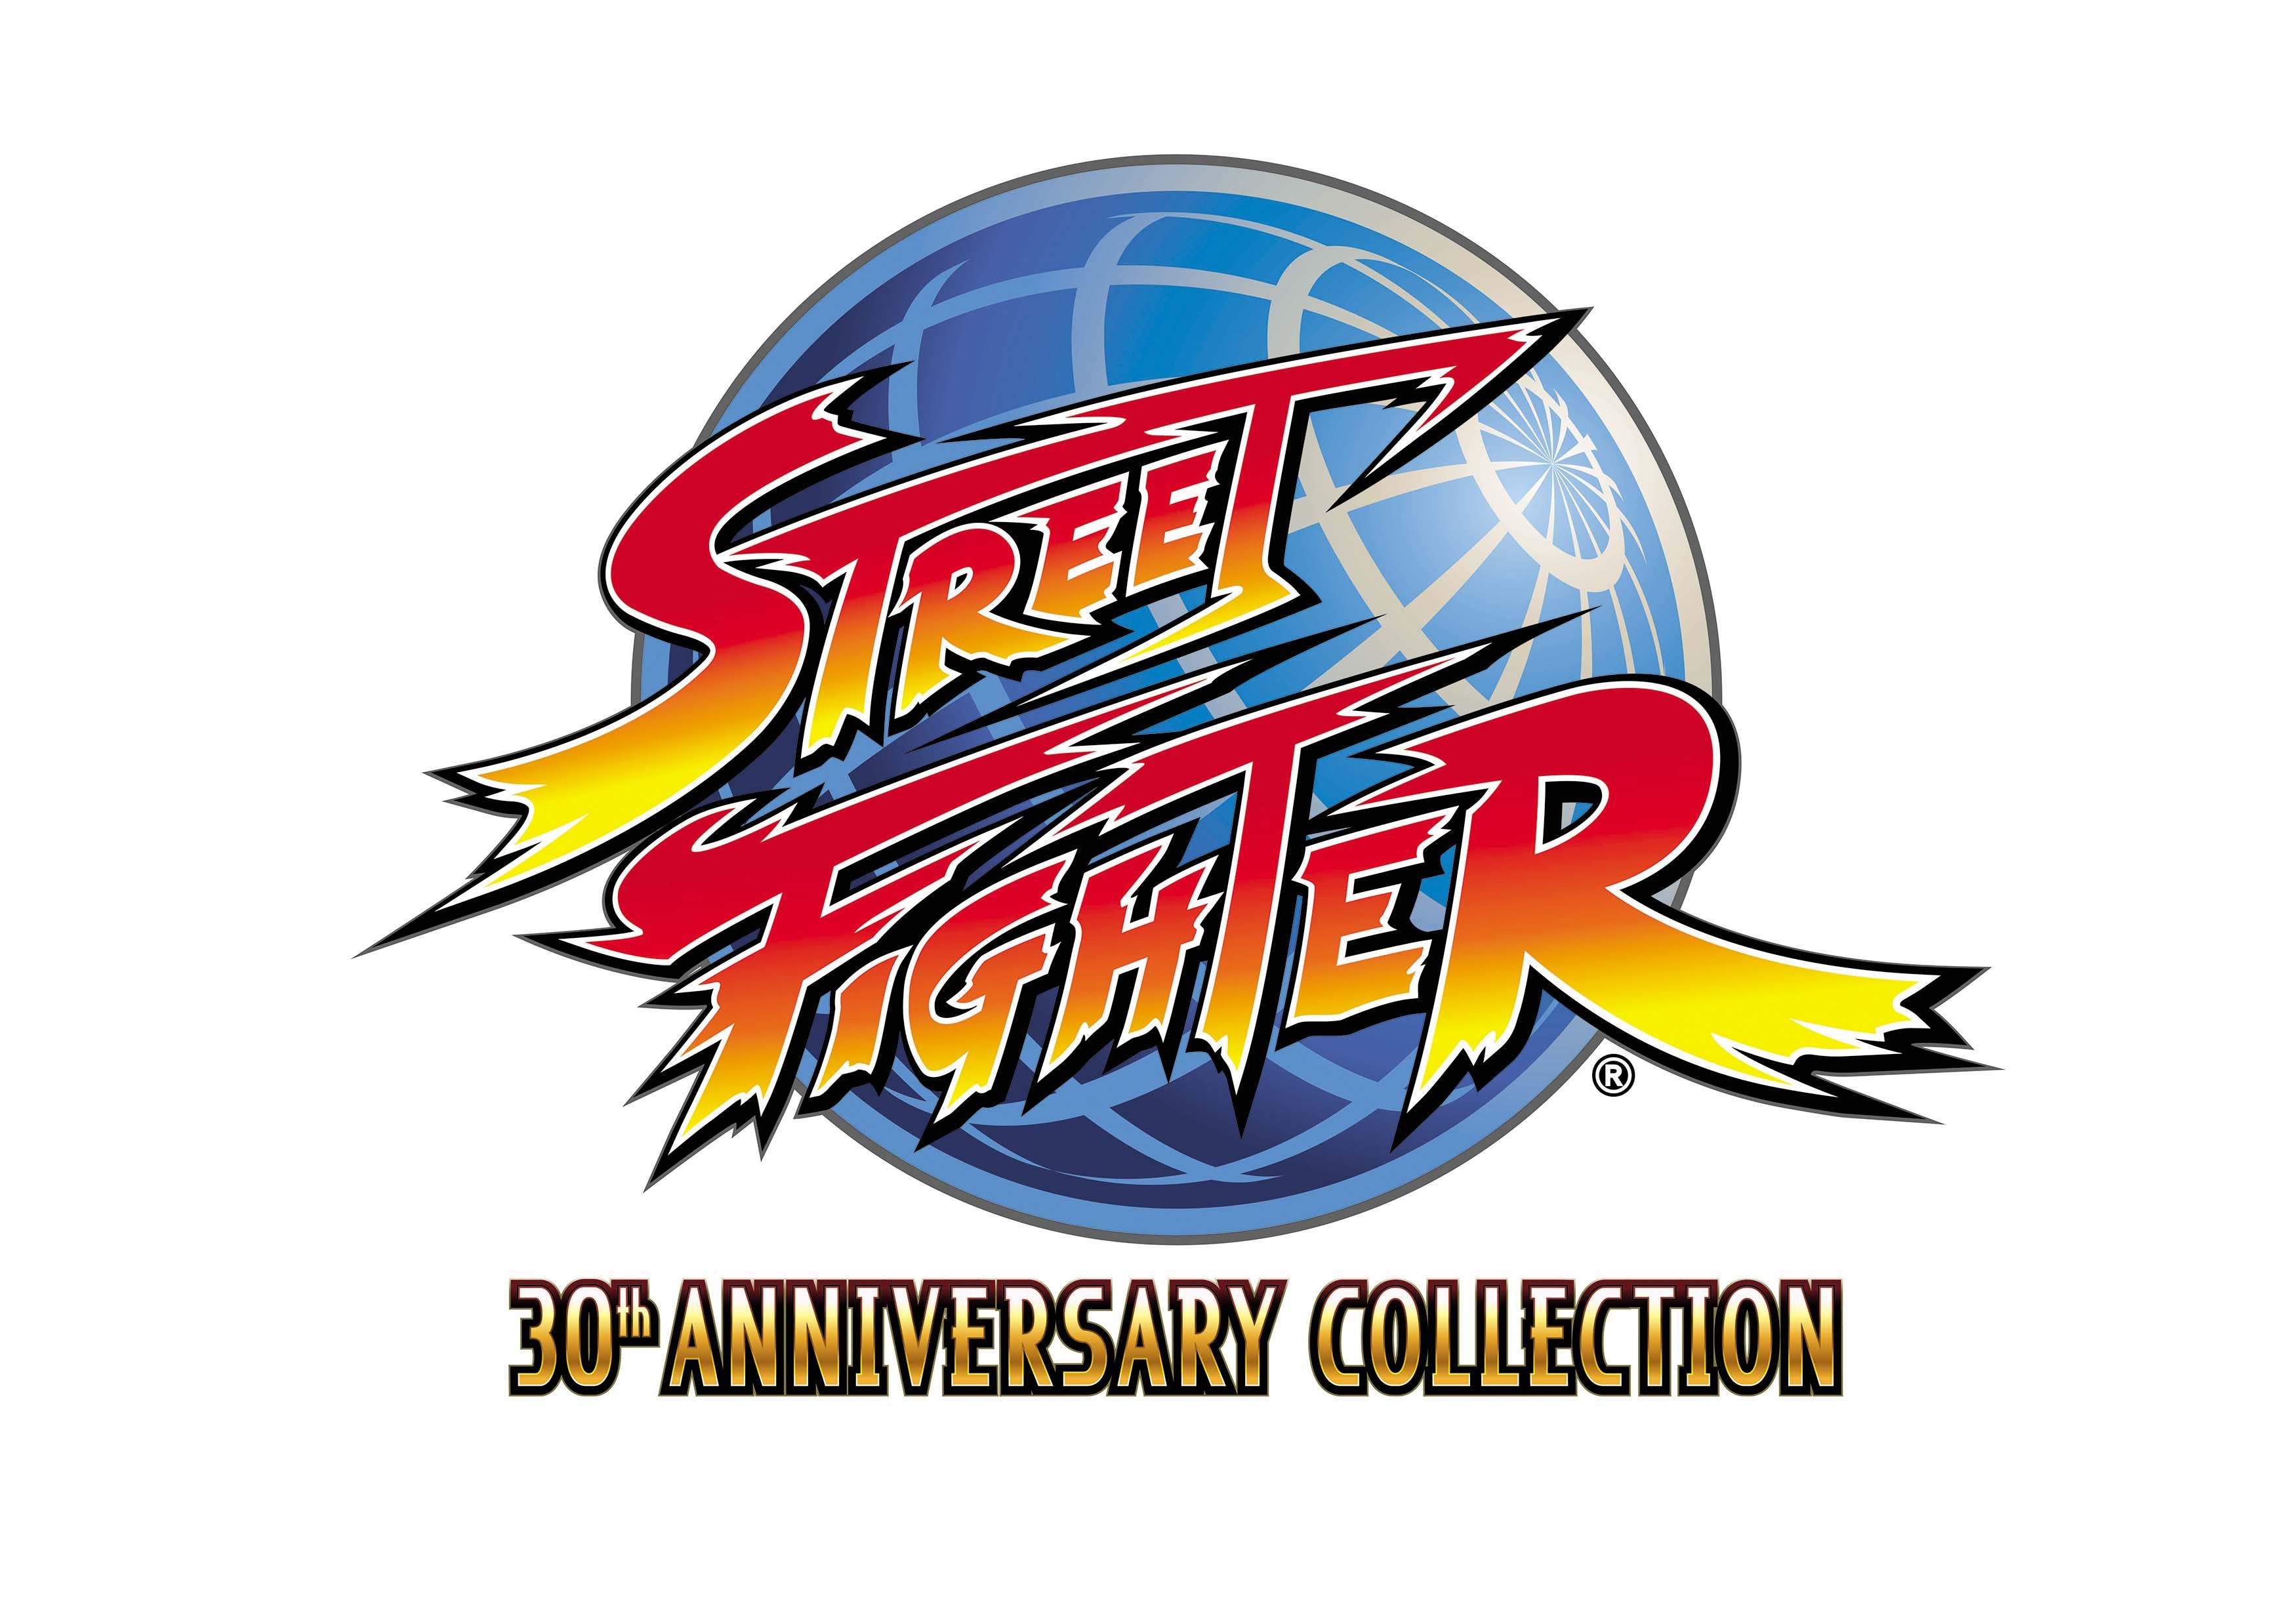 Street Fighter 30 Anniversary Collection